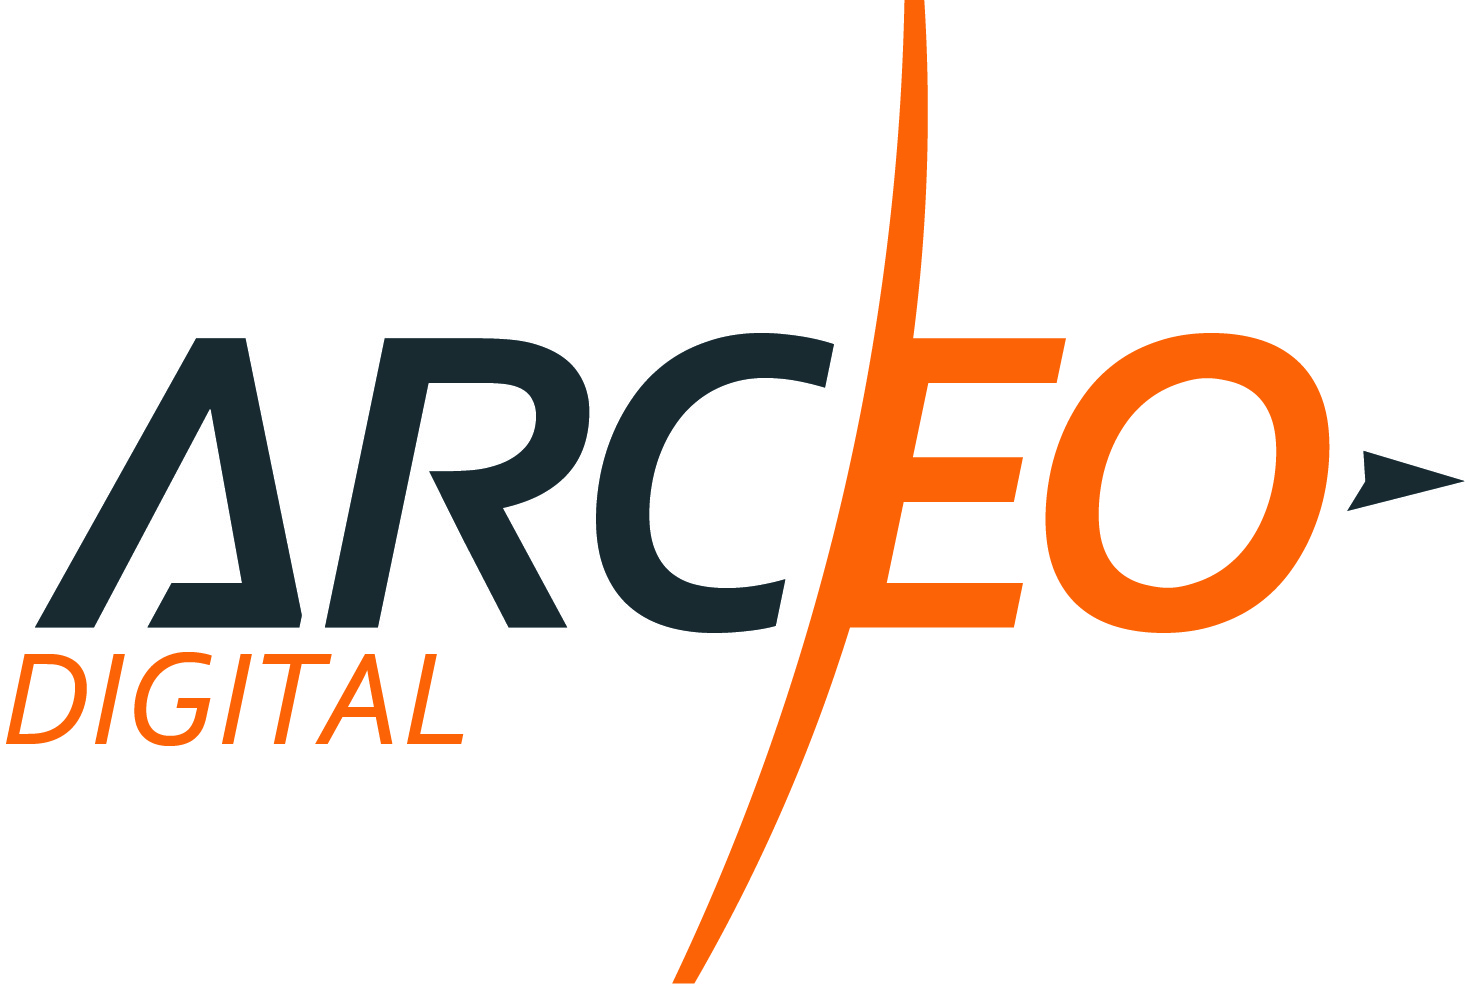 Arceo Digital